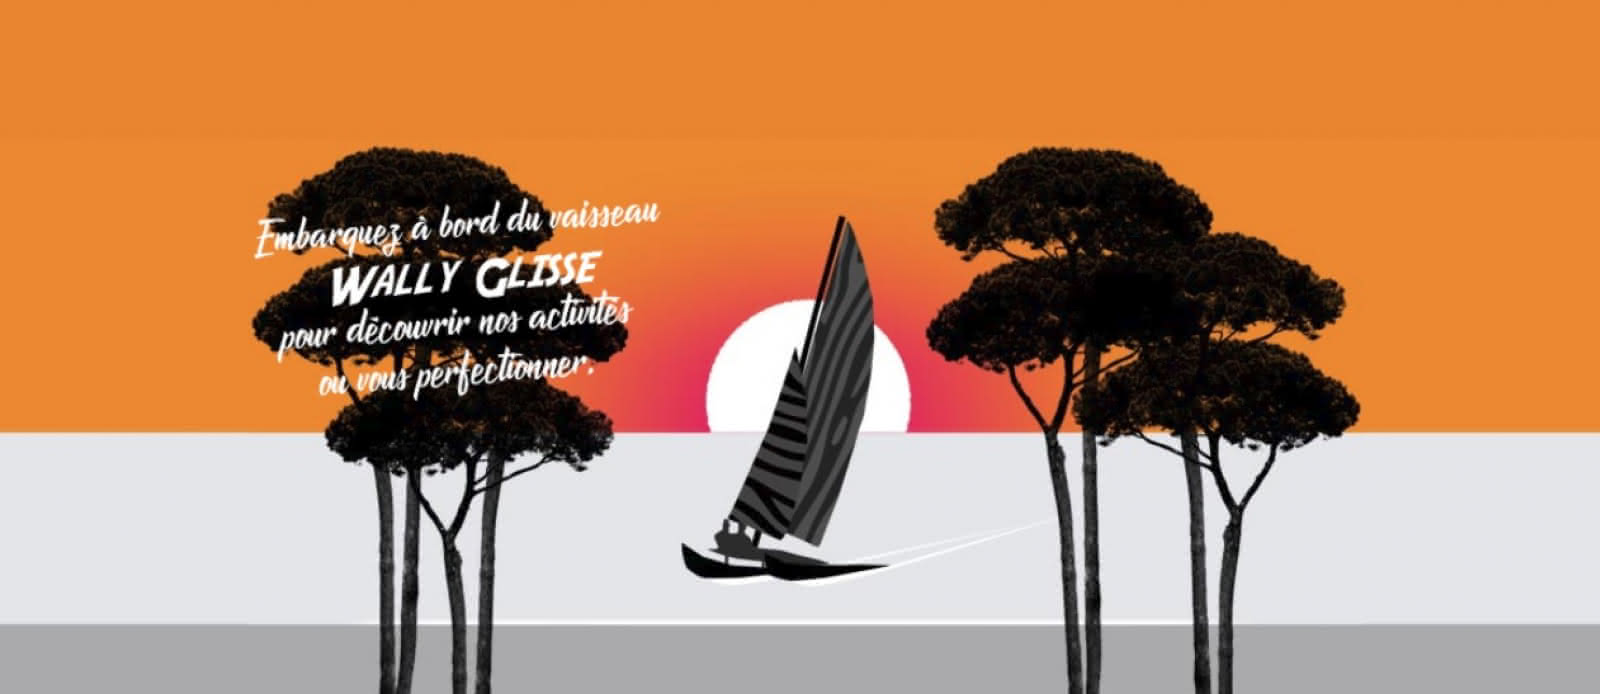 Wally Glisse - Ecole de voile 1